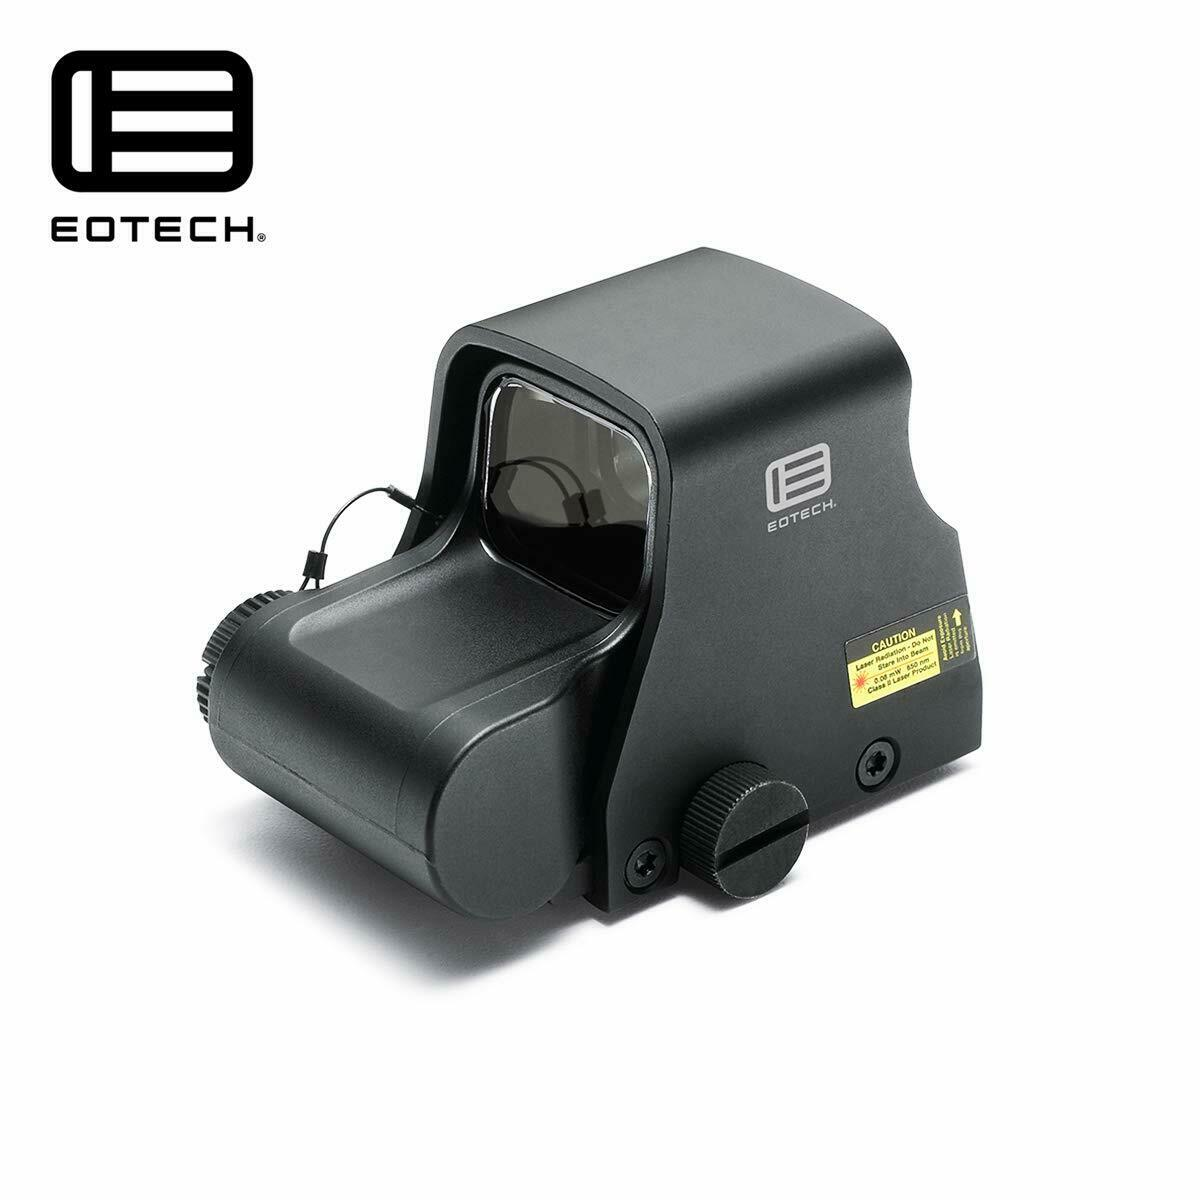 EOTech XPS3-0 Holographic Weapon Sight Scope 68 MOA Circle with 1 MOA Red Dot